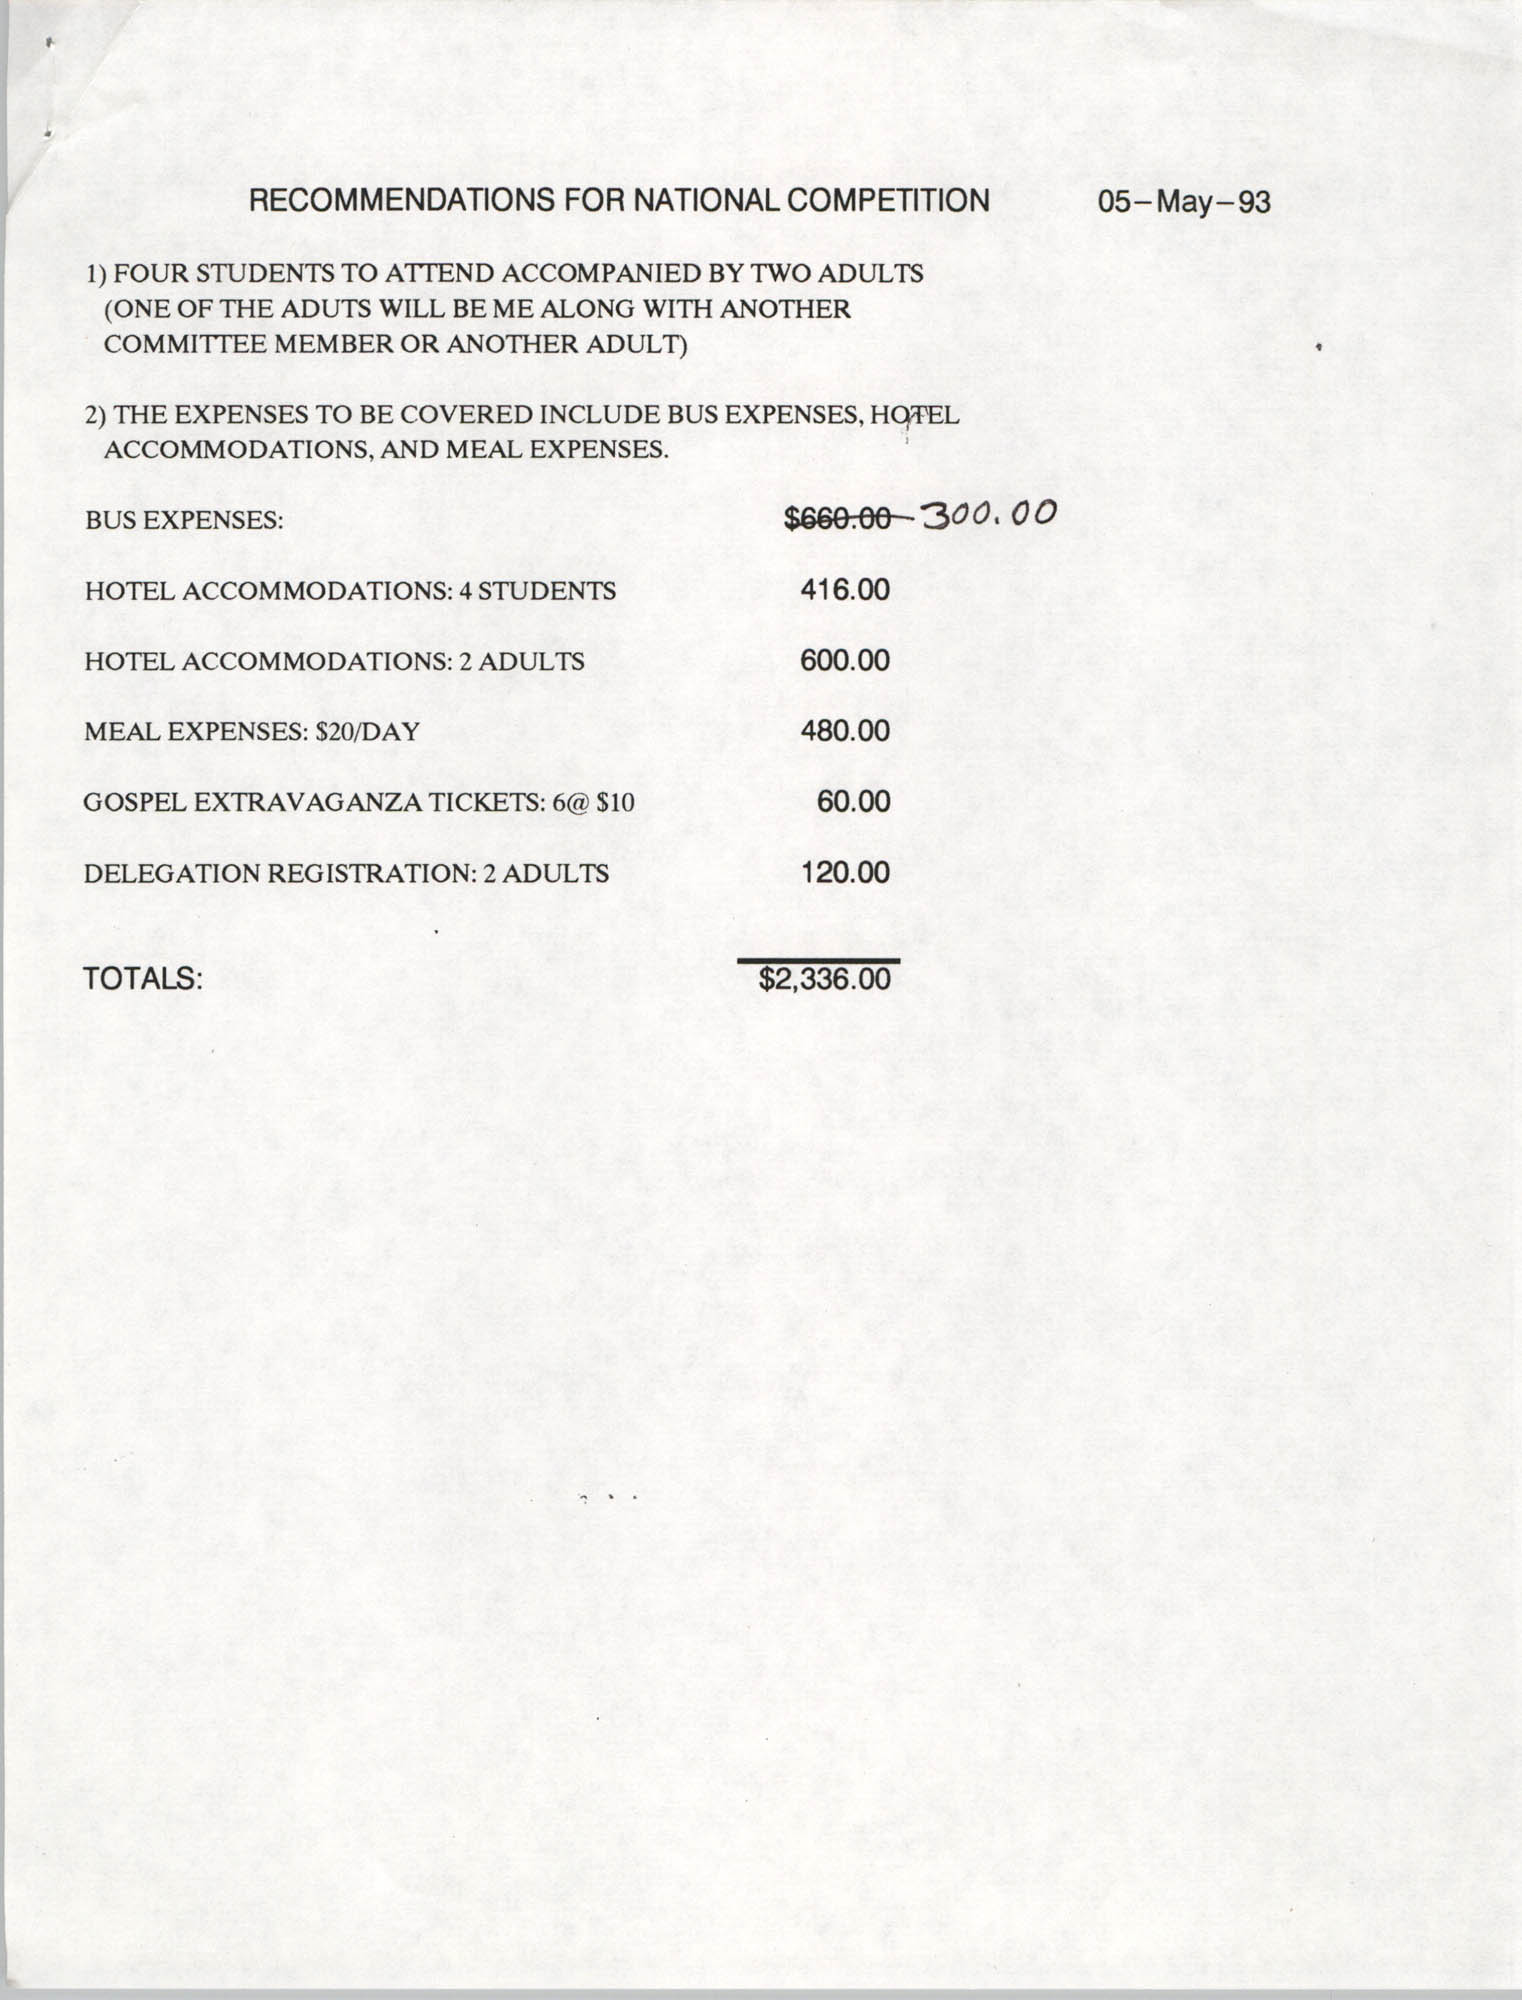 Recommendations for National Competition, NAACP, May 5, 1993